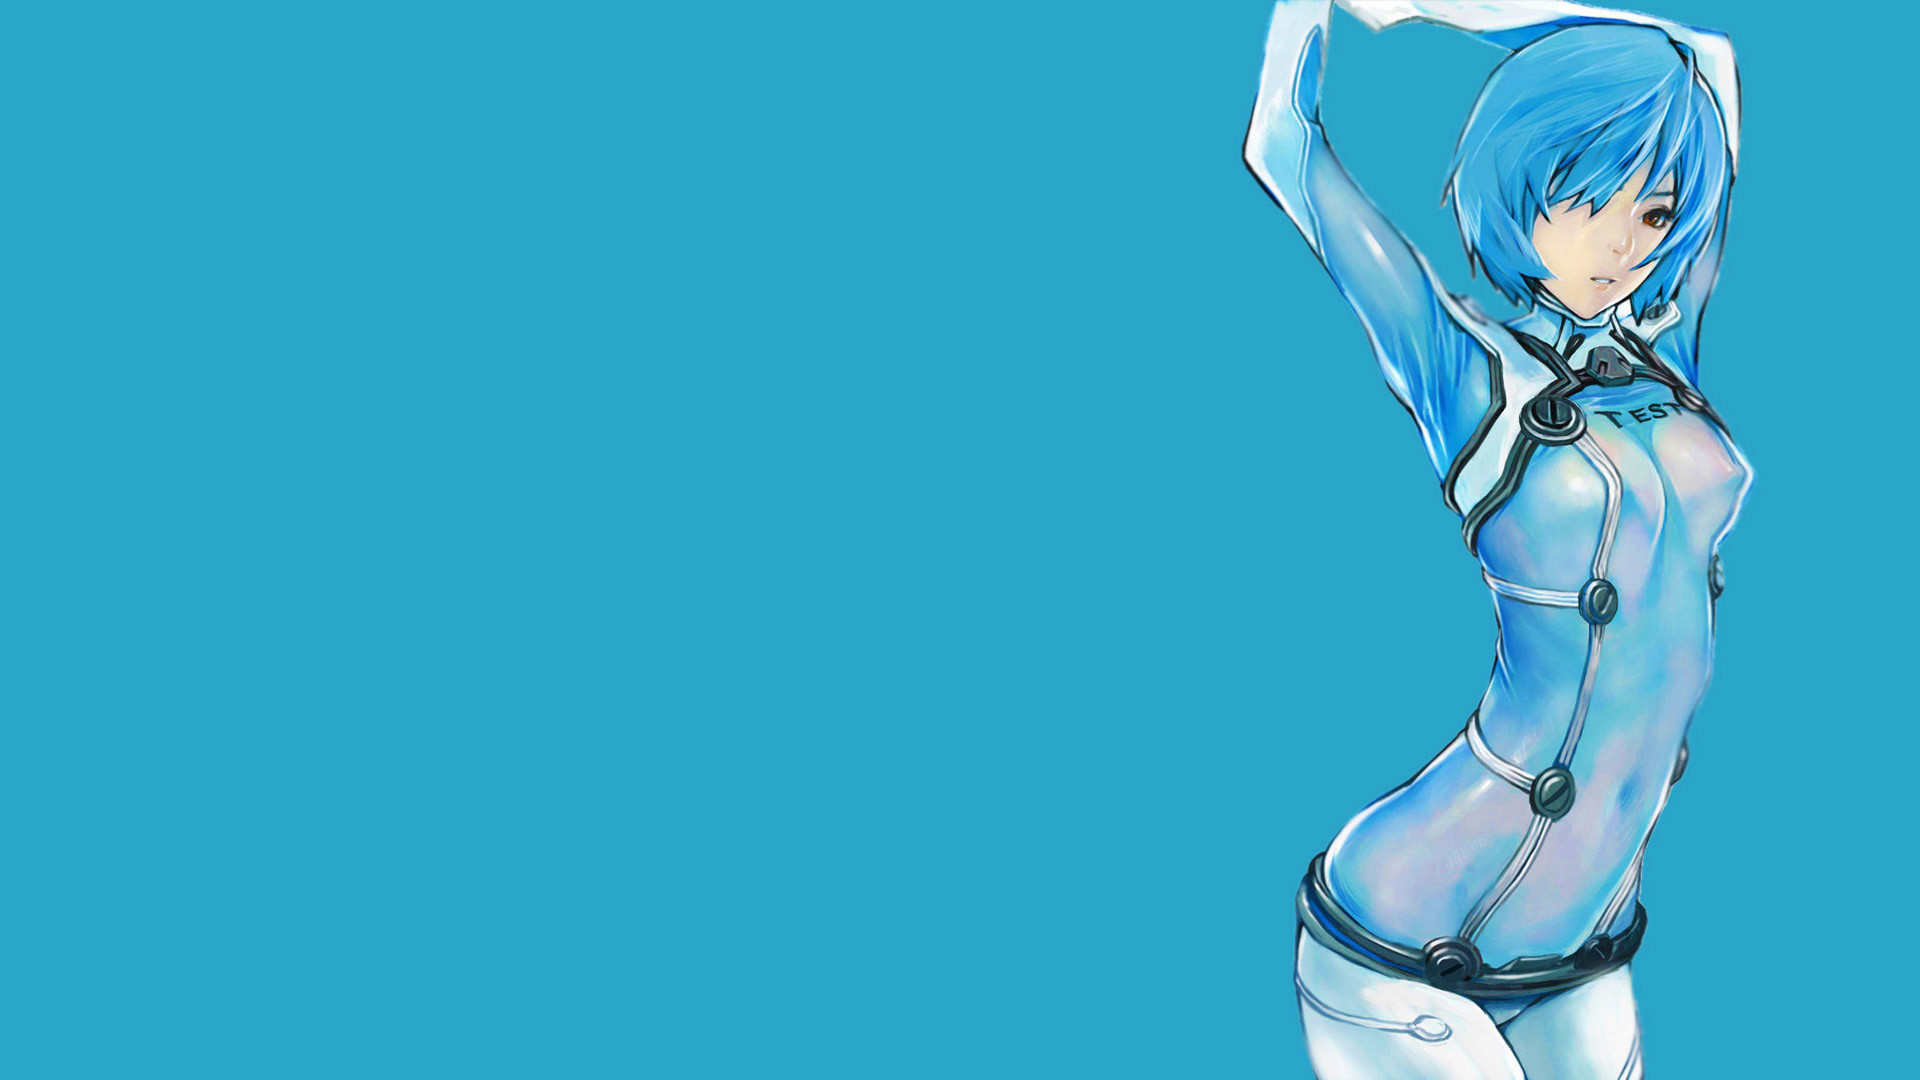 1920x1080 Ayanami Rei Neon Genesis Evangelion simple background wallpaper |   | 193422 | WallpaperUP